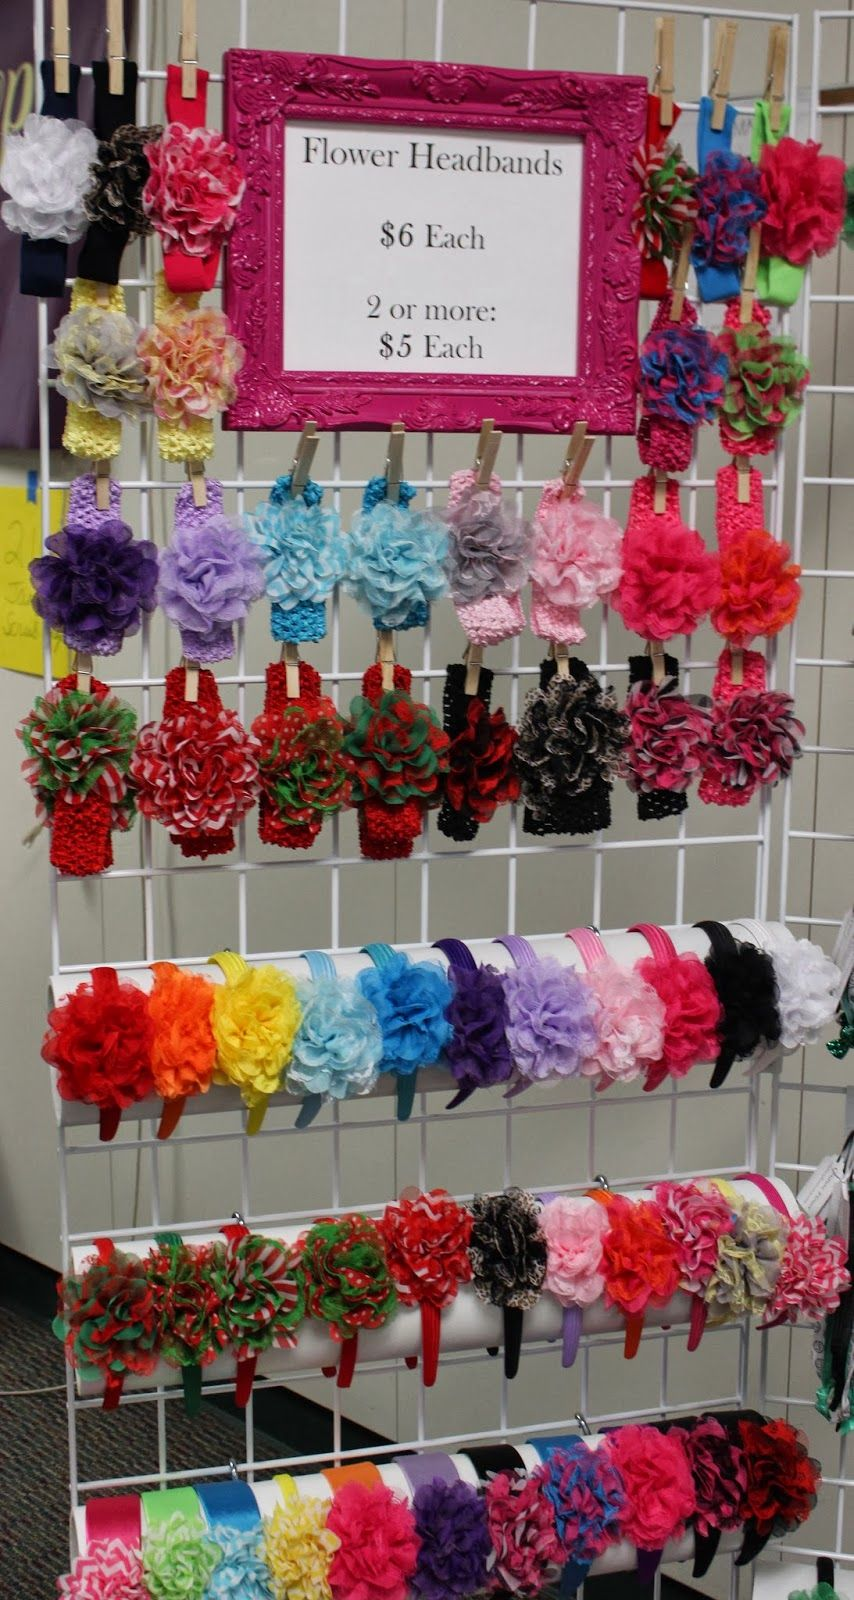 Couture Flower Southlake Craft Fair Vendor Booth Ideas